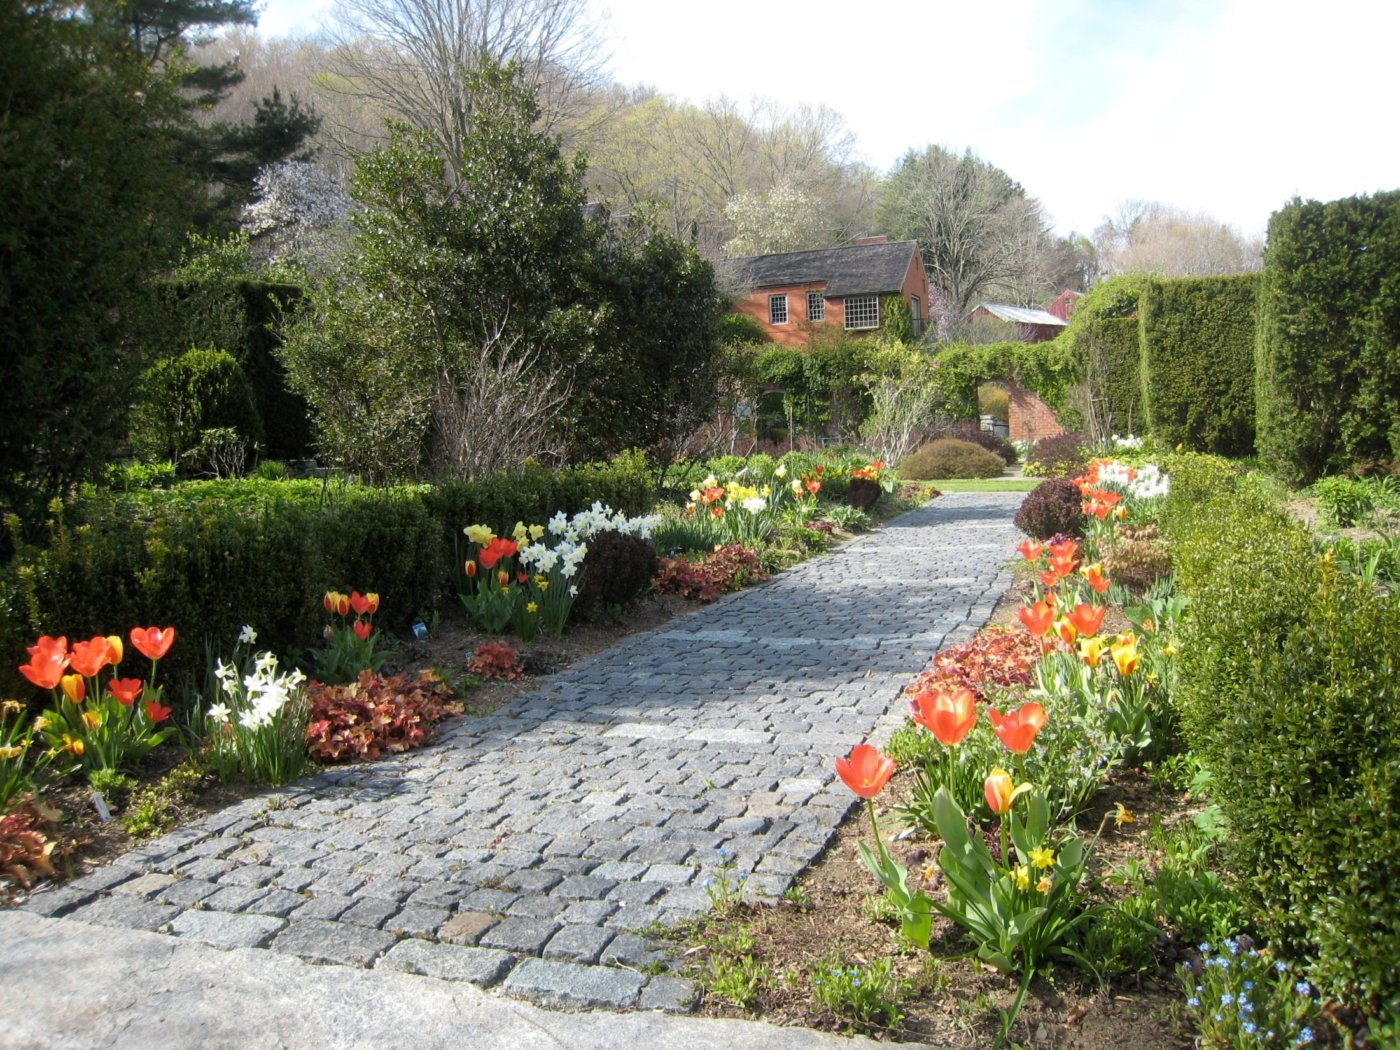 The Clic English Gardens At Hollister House Explore